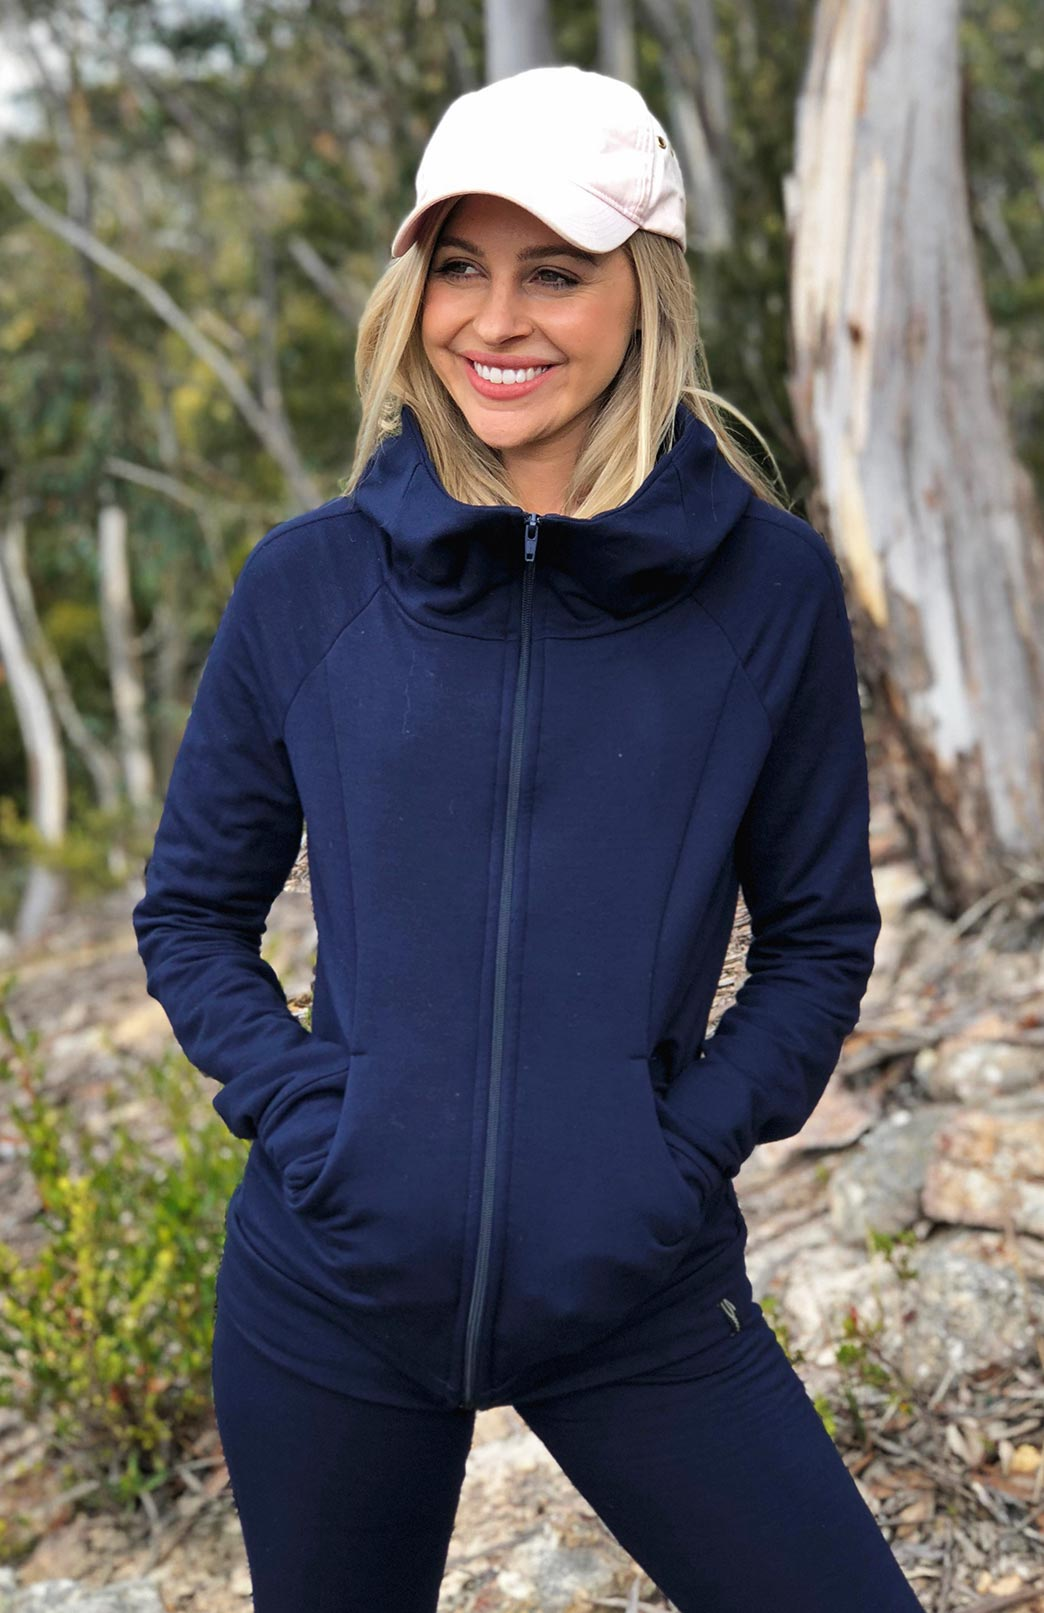 Fitted Fleece Hoody Jacket - Women's French Navy Blue Wool Jacket with pockets and hood - Smitten Merino Tasmania Australia